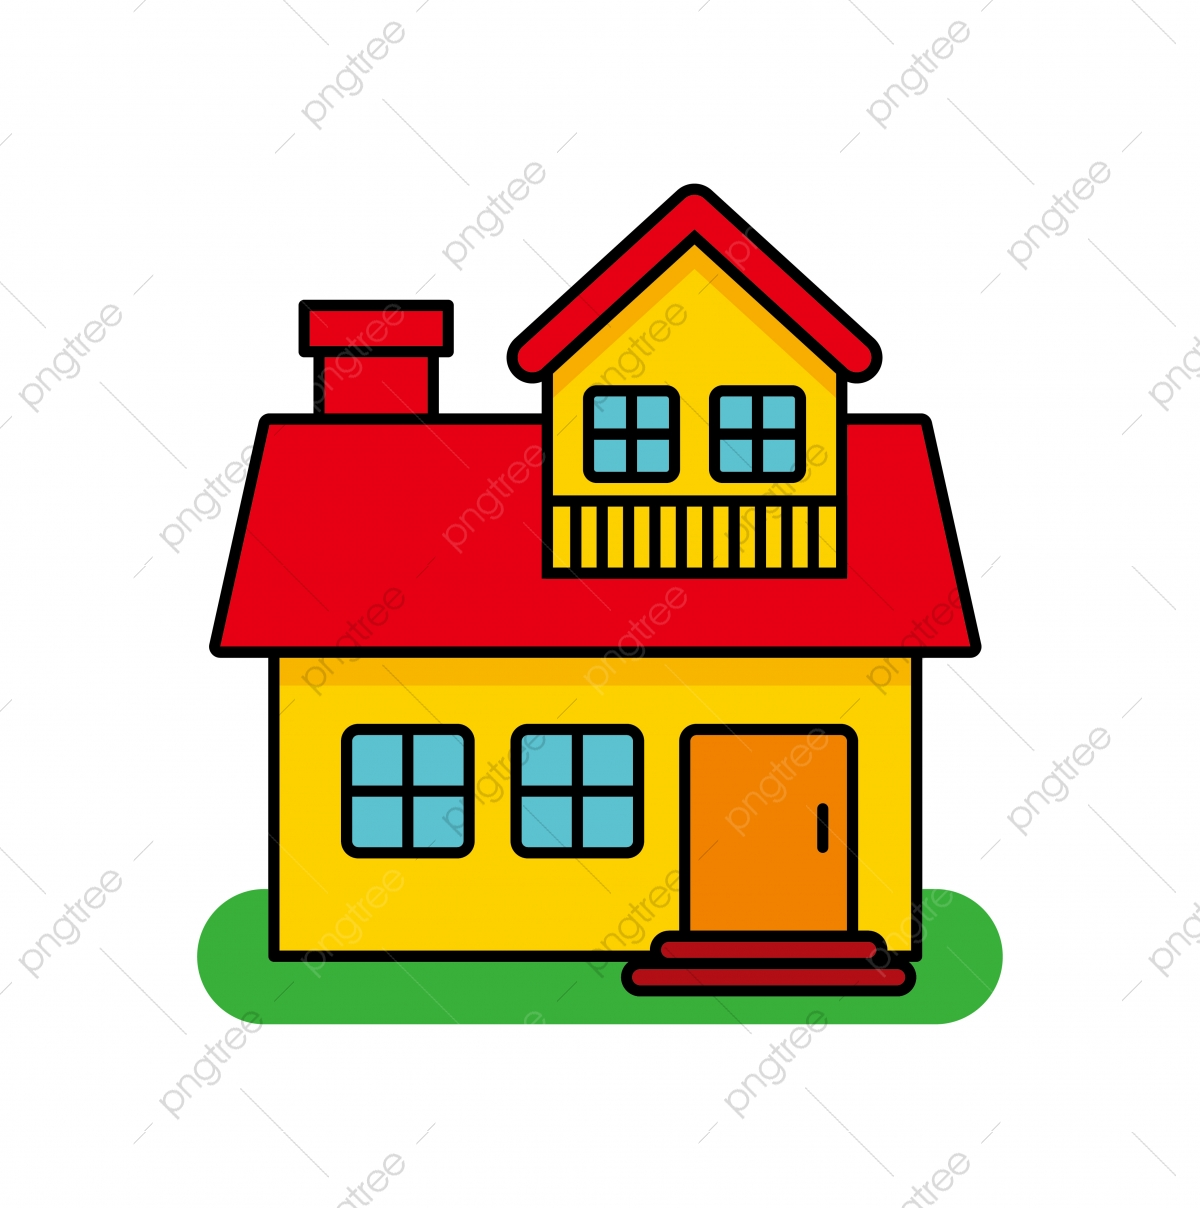 House Vector Illustration Isolated On White Background House Cartoon House Clip Art House Clipart Clip Art Home Png And Vector With Transparent Background For Free Download